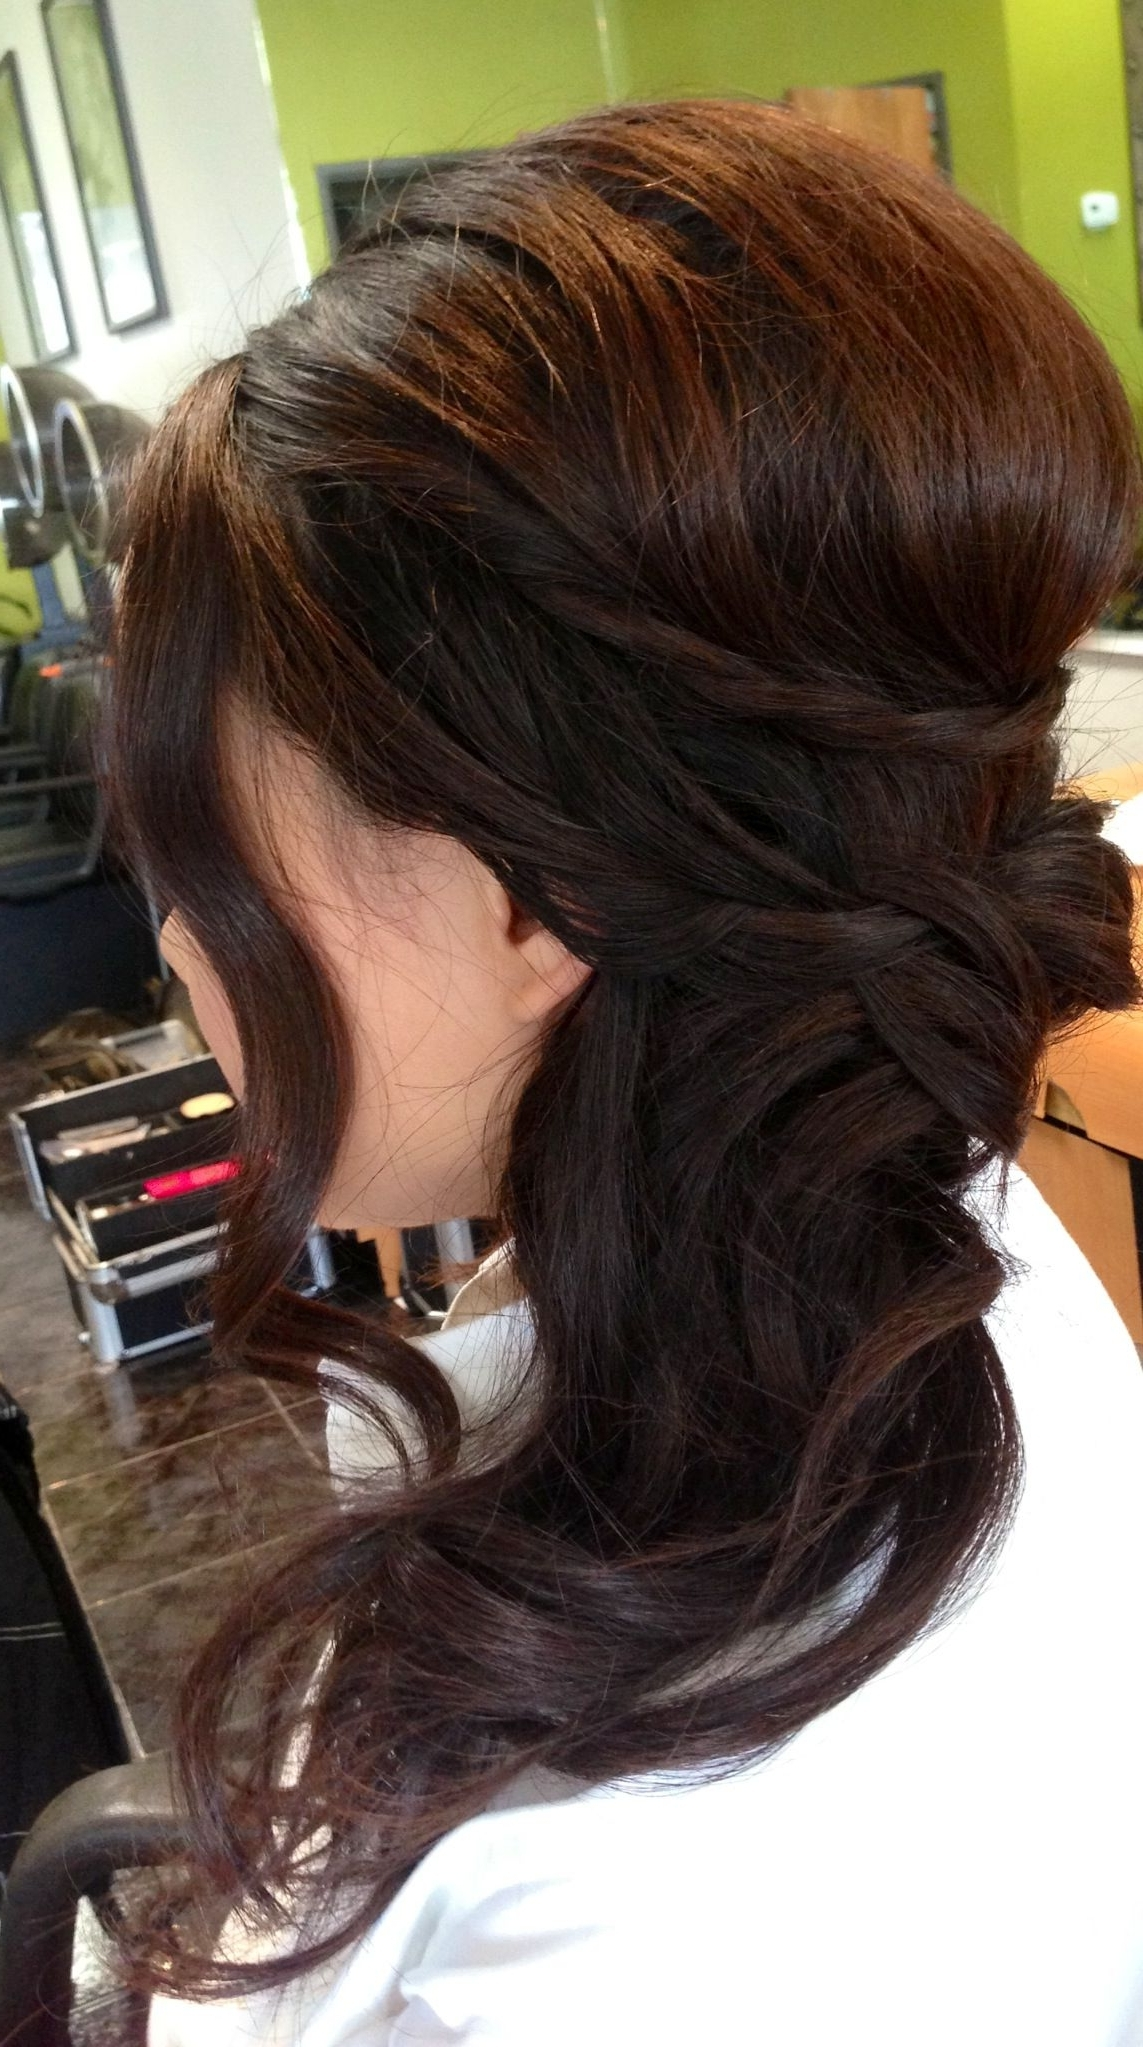 Favorite Pumped Up Side Pony Hairstyles With Wedding Updo, Wedding Hair, Bridal Hair, Curls, Side Ponytail, Asian (View 9 of 20)